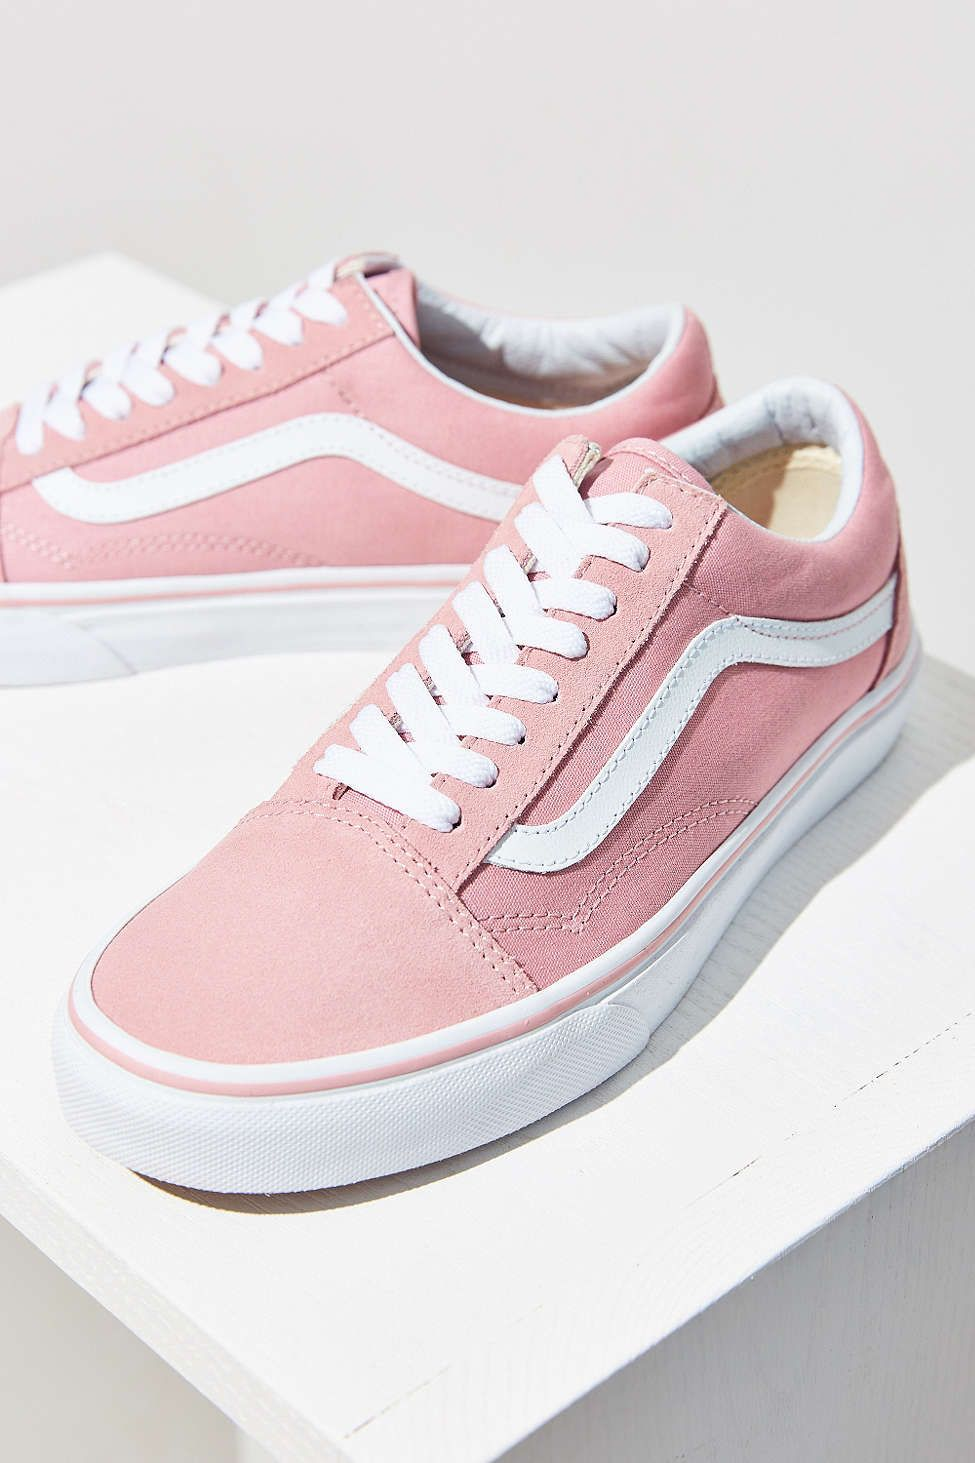 Vans Pink Old Skool Sneaker | Vans of the wall | Van